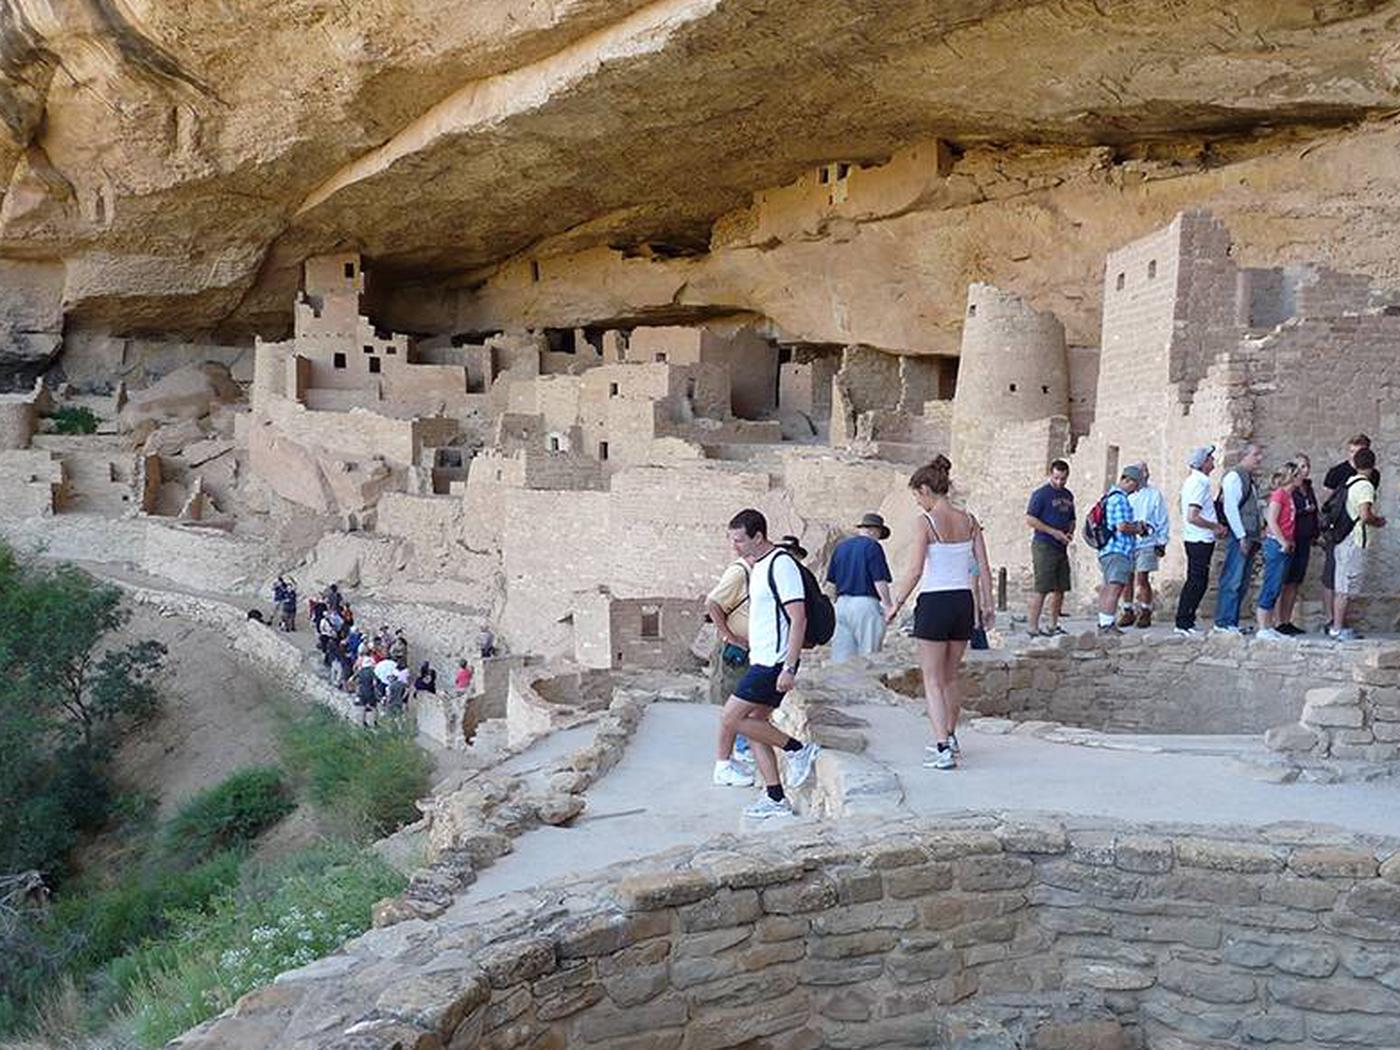 Visitors touring a large, ancient, stone-masonry villageVisiting Cliff Palace on a ranger-guided tour